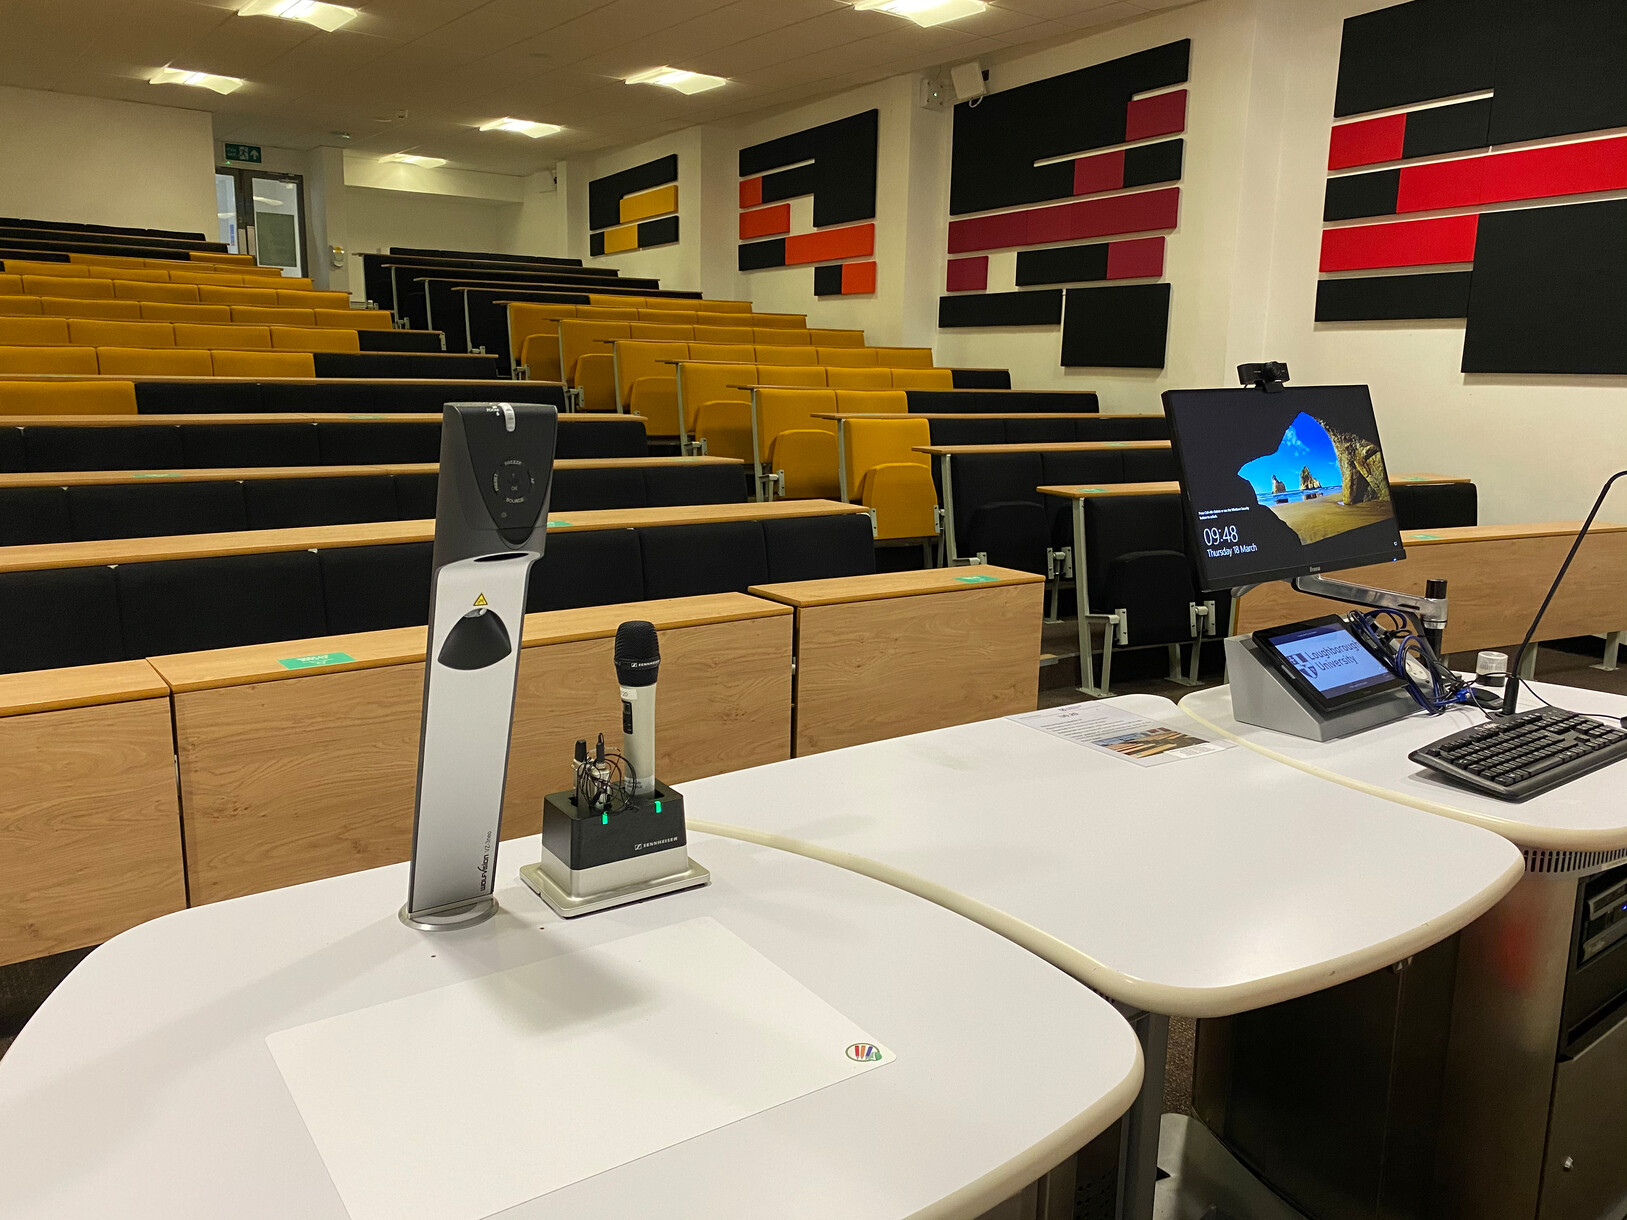 WolfVision Visualizer mounted directly onto the lectern at Loughborough University.